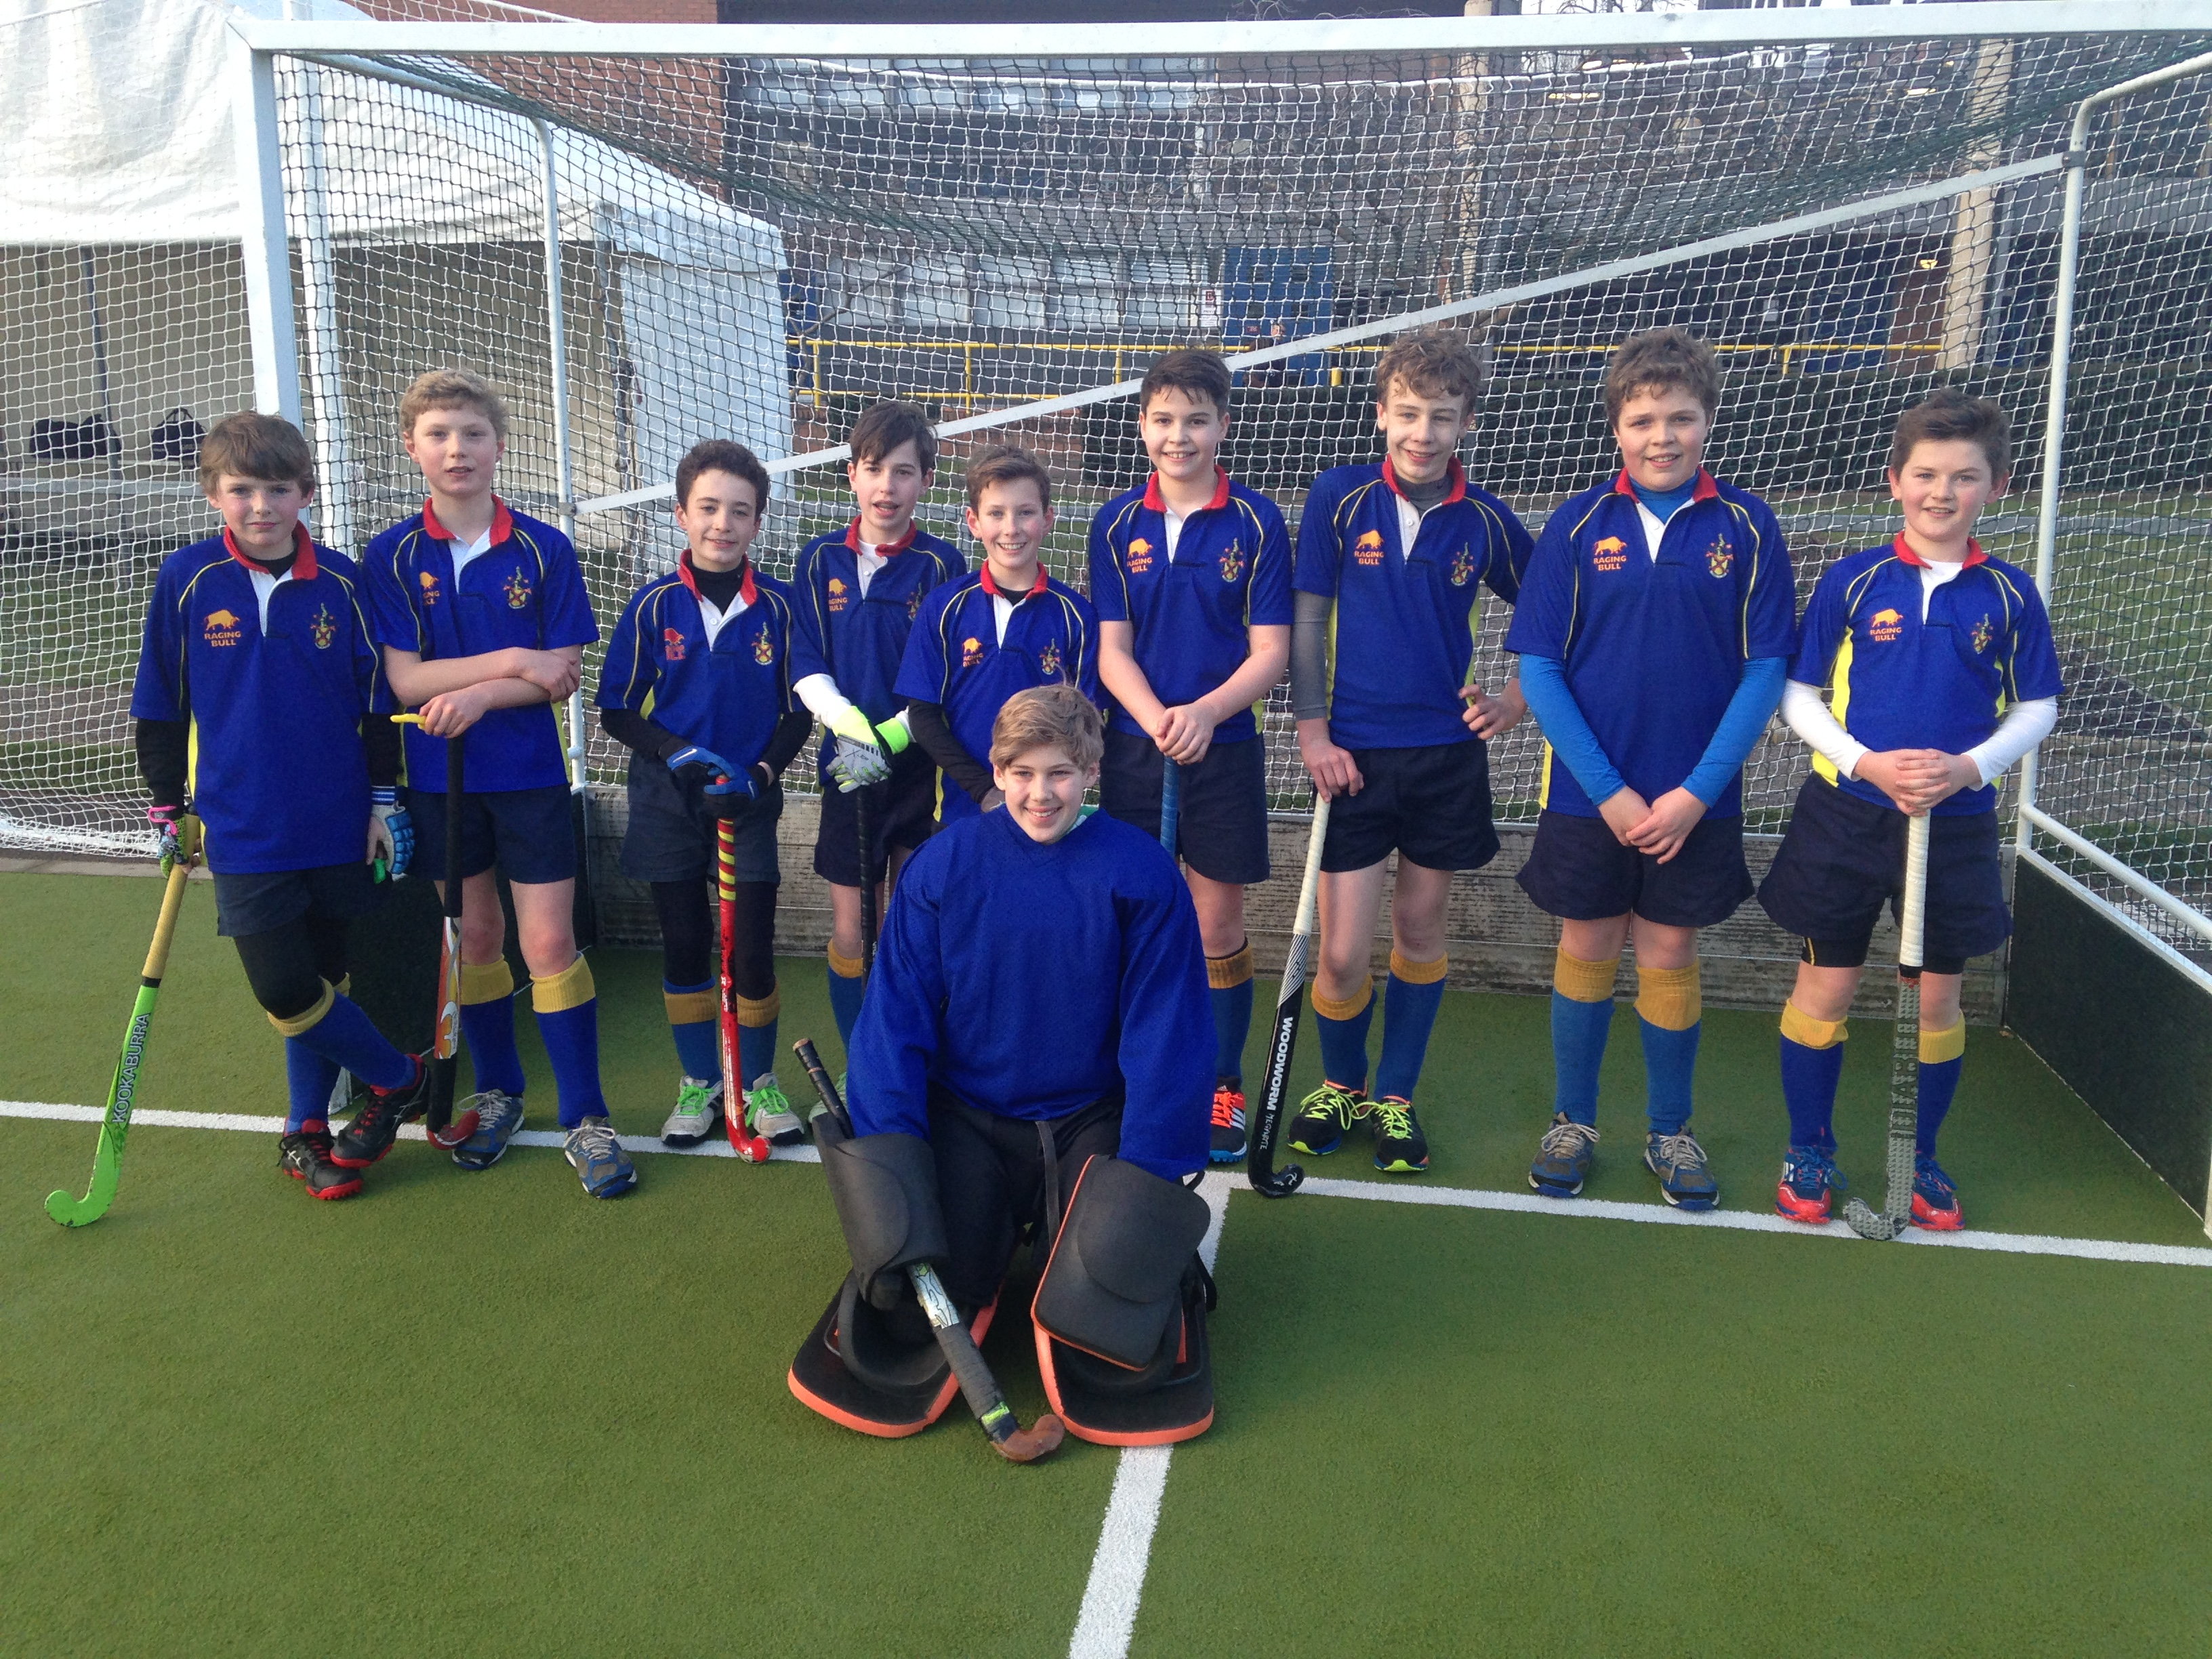 Photo 1 - U13 Hockey Team